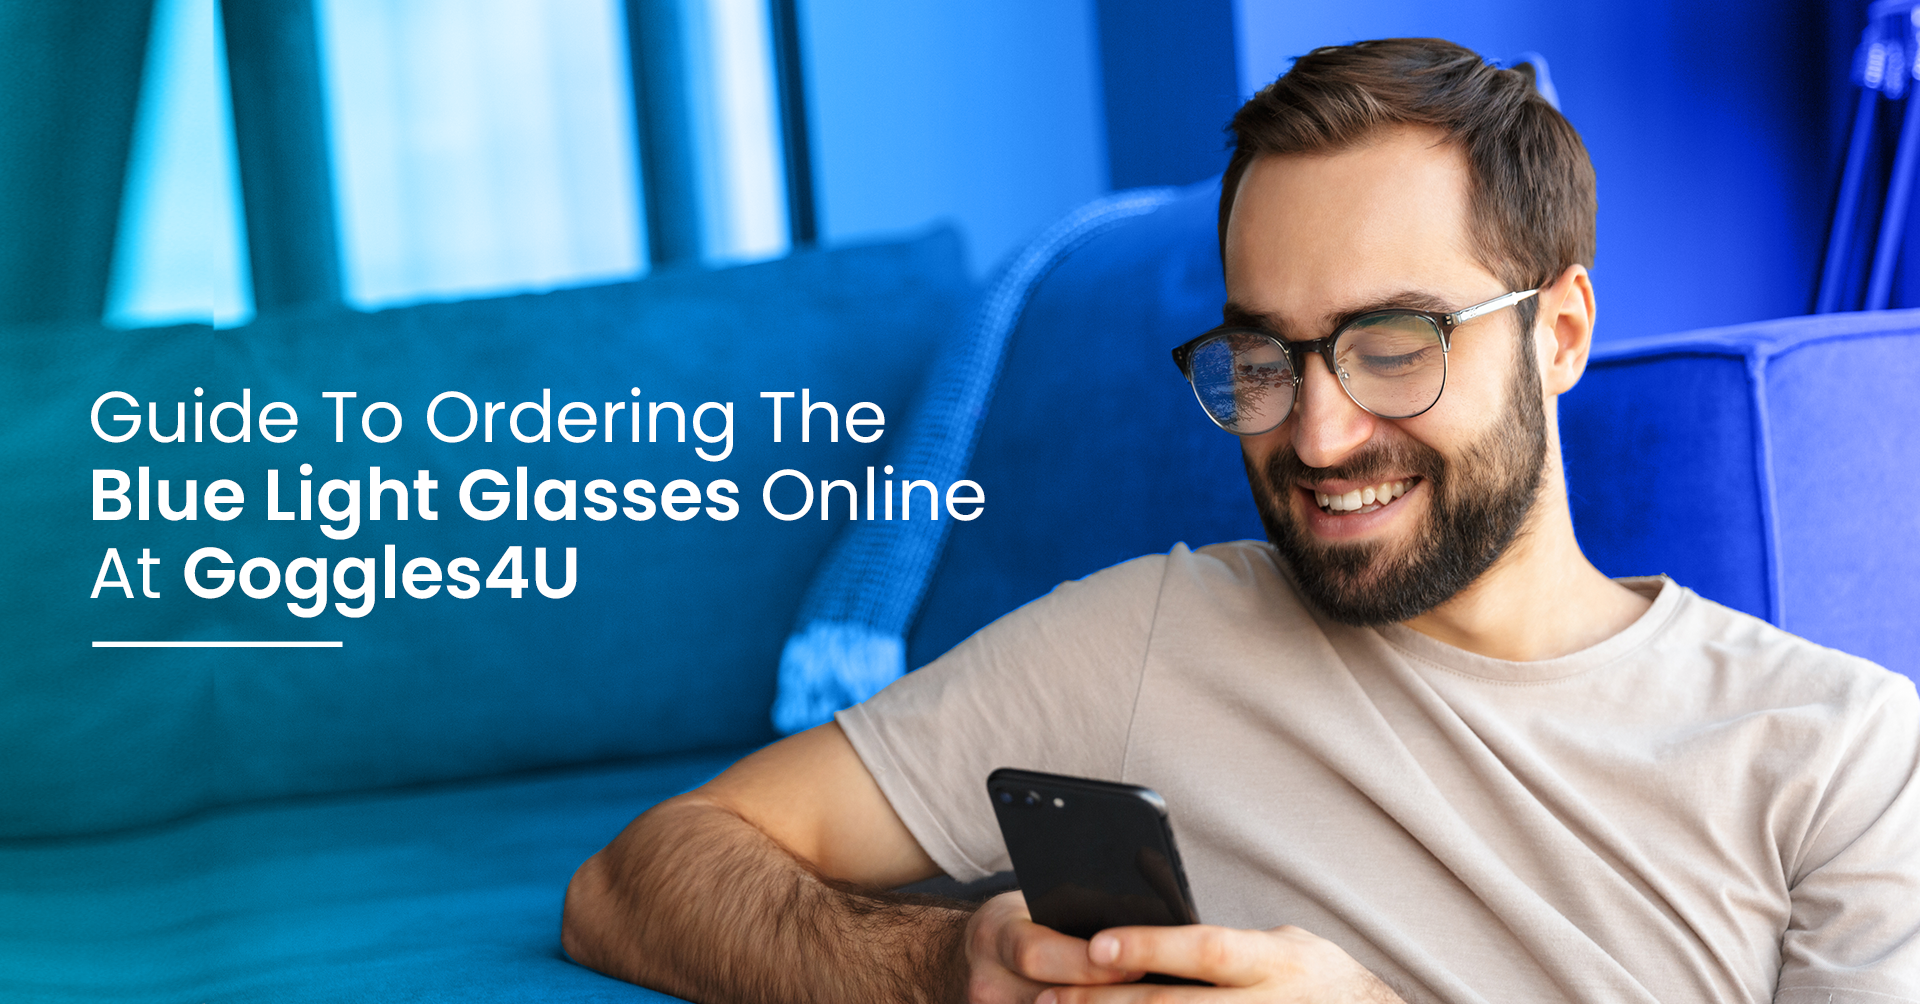 Guide To Ordering The Blue Light Glasses Online